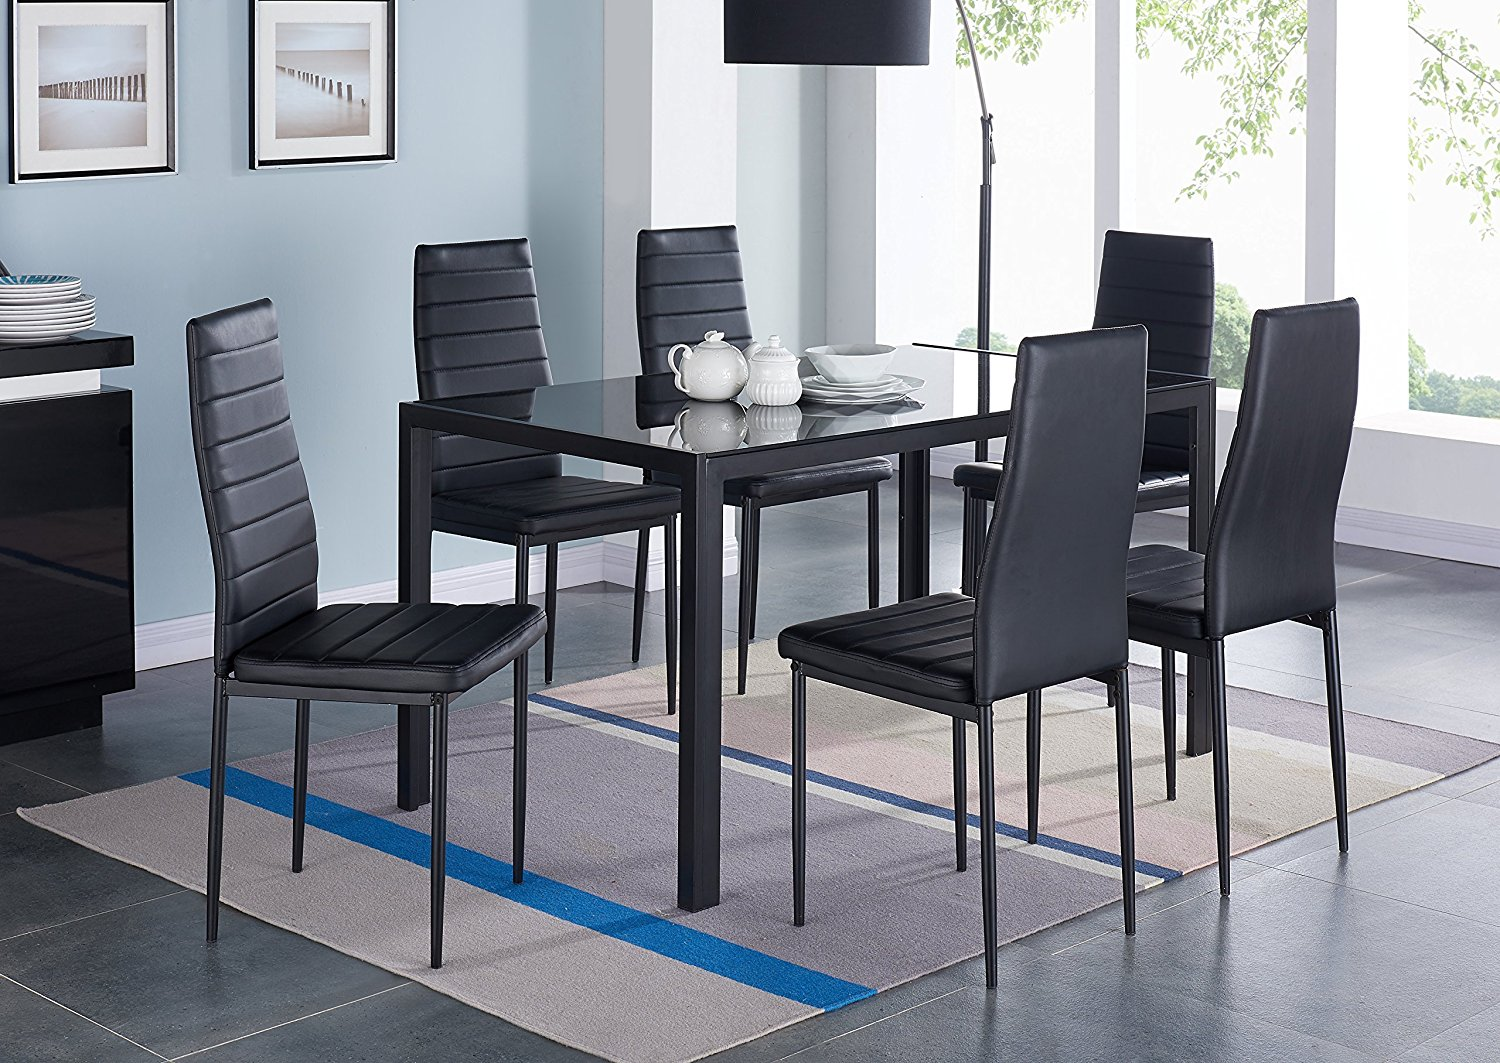 Merveilleux IDS Home 7 Pieces Dining Table Set, Home Dining Dinette Kitchen 6 People  Dining